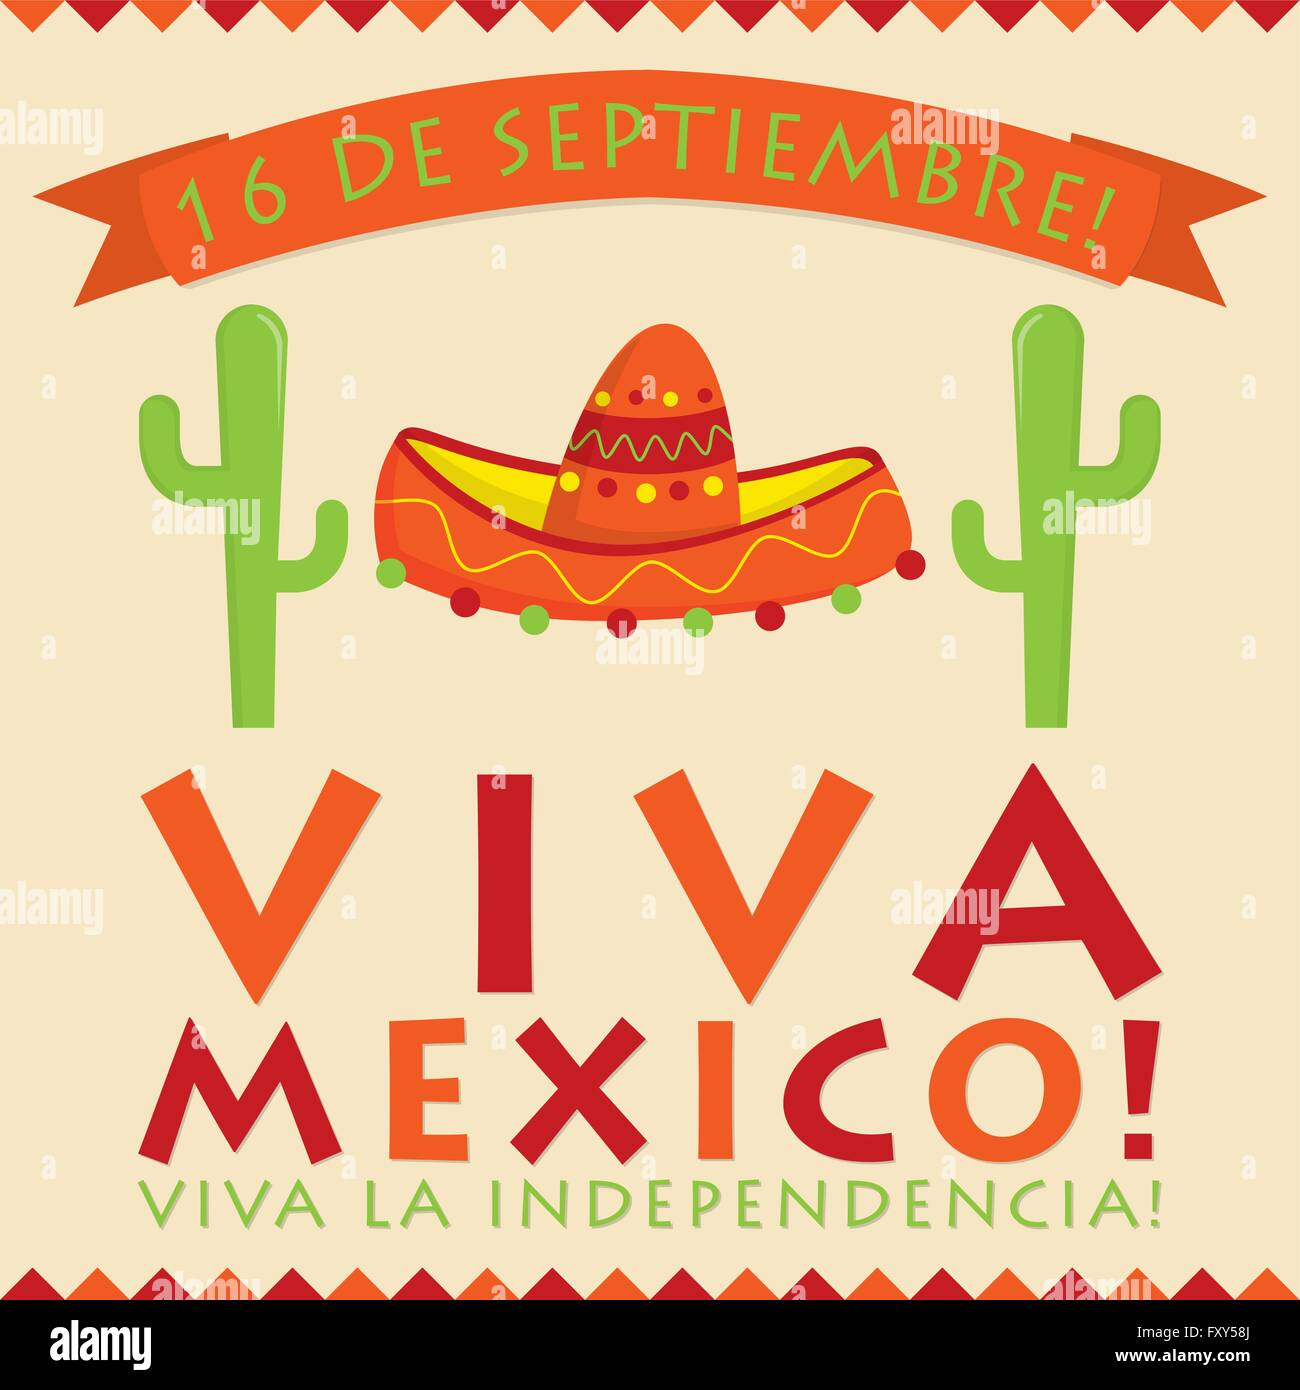 mexico independence Mexican independence day is a major mexican celebration held every year one september 15th, the eve of mexican independence day, the celebrations begin on september 15th, 1810, father.